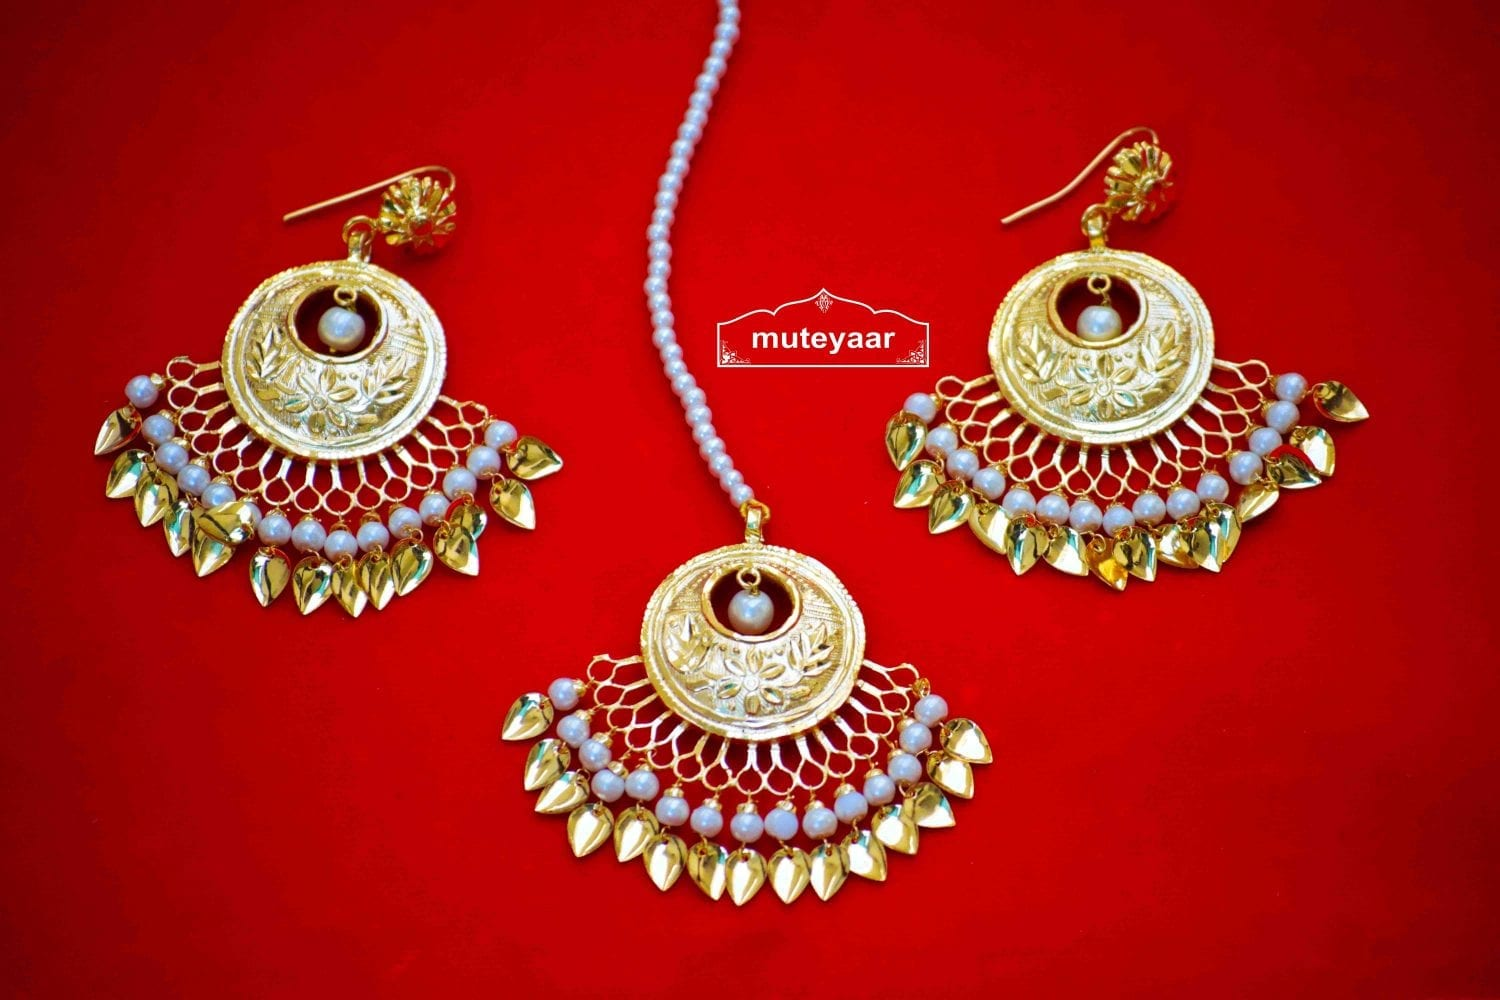 24 Ct. Gold Plated Traditional Punjabi Jewellery Earrings Tikka set Hand Made J0383 1